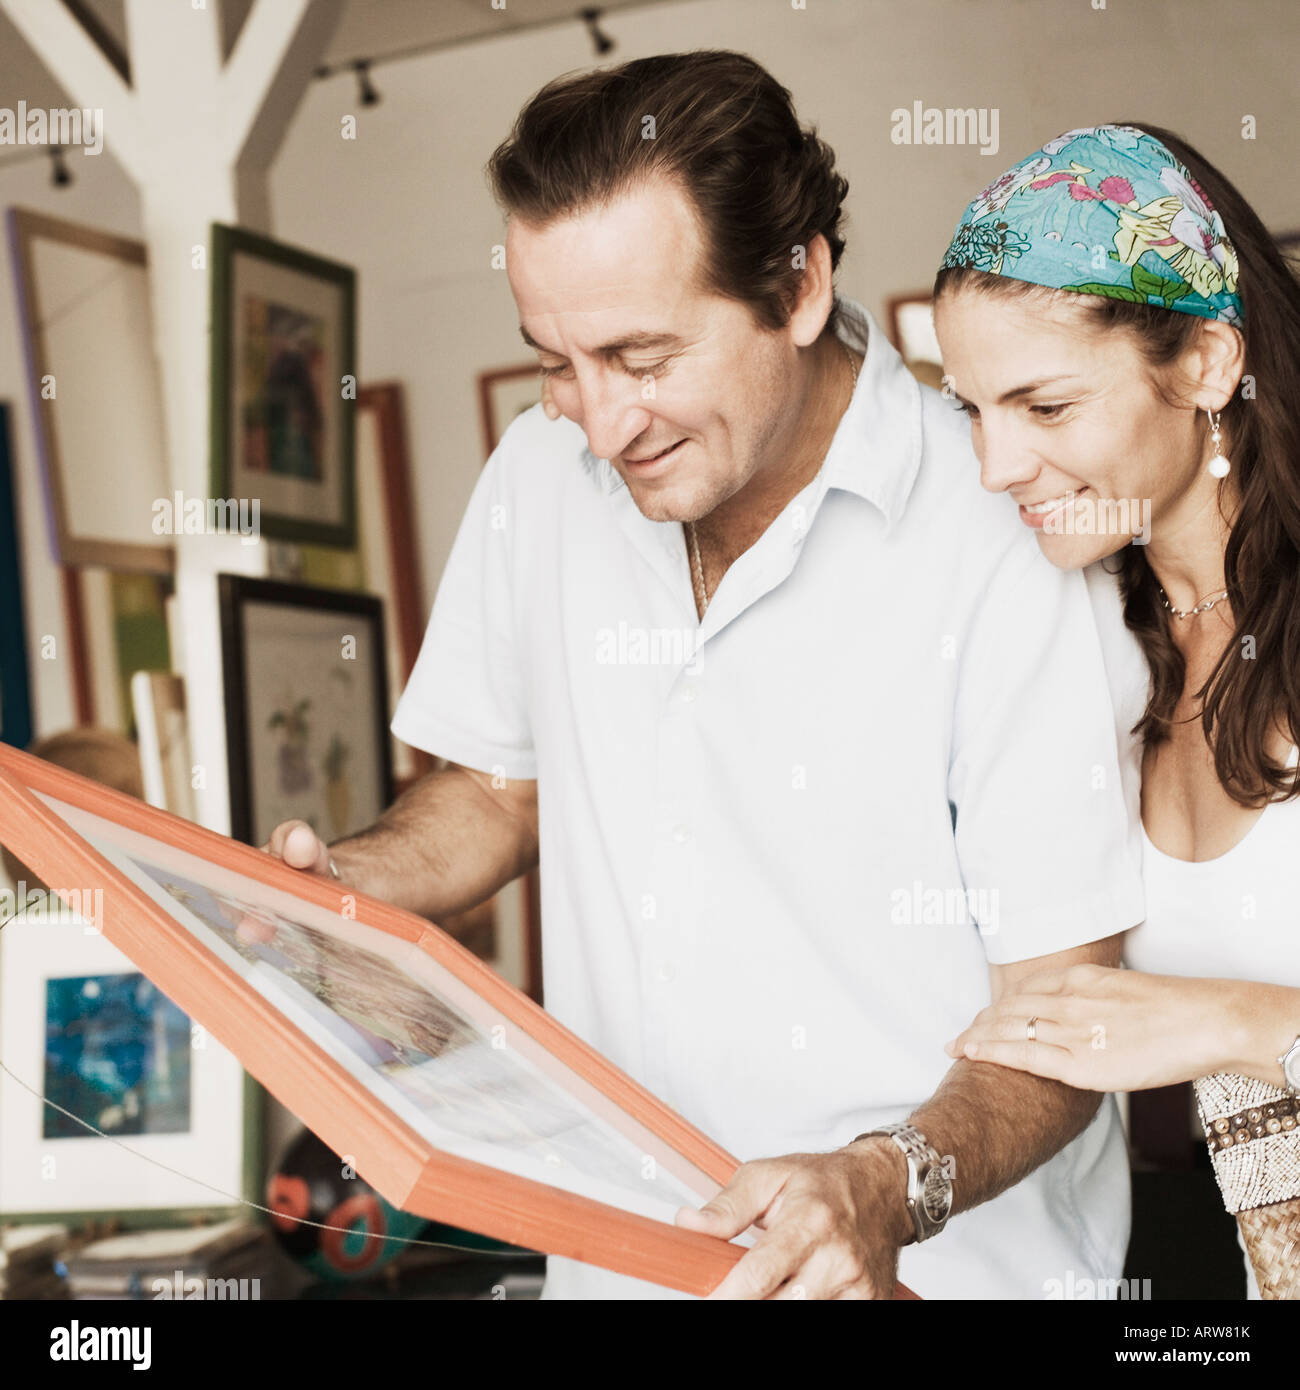 Mid adult couple purchasing paintings from a store - Stock Image